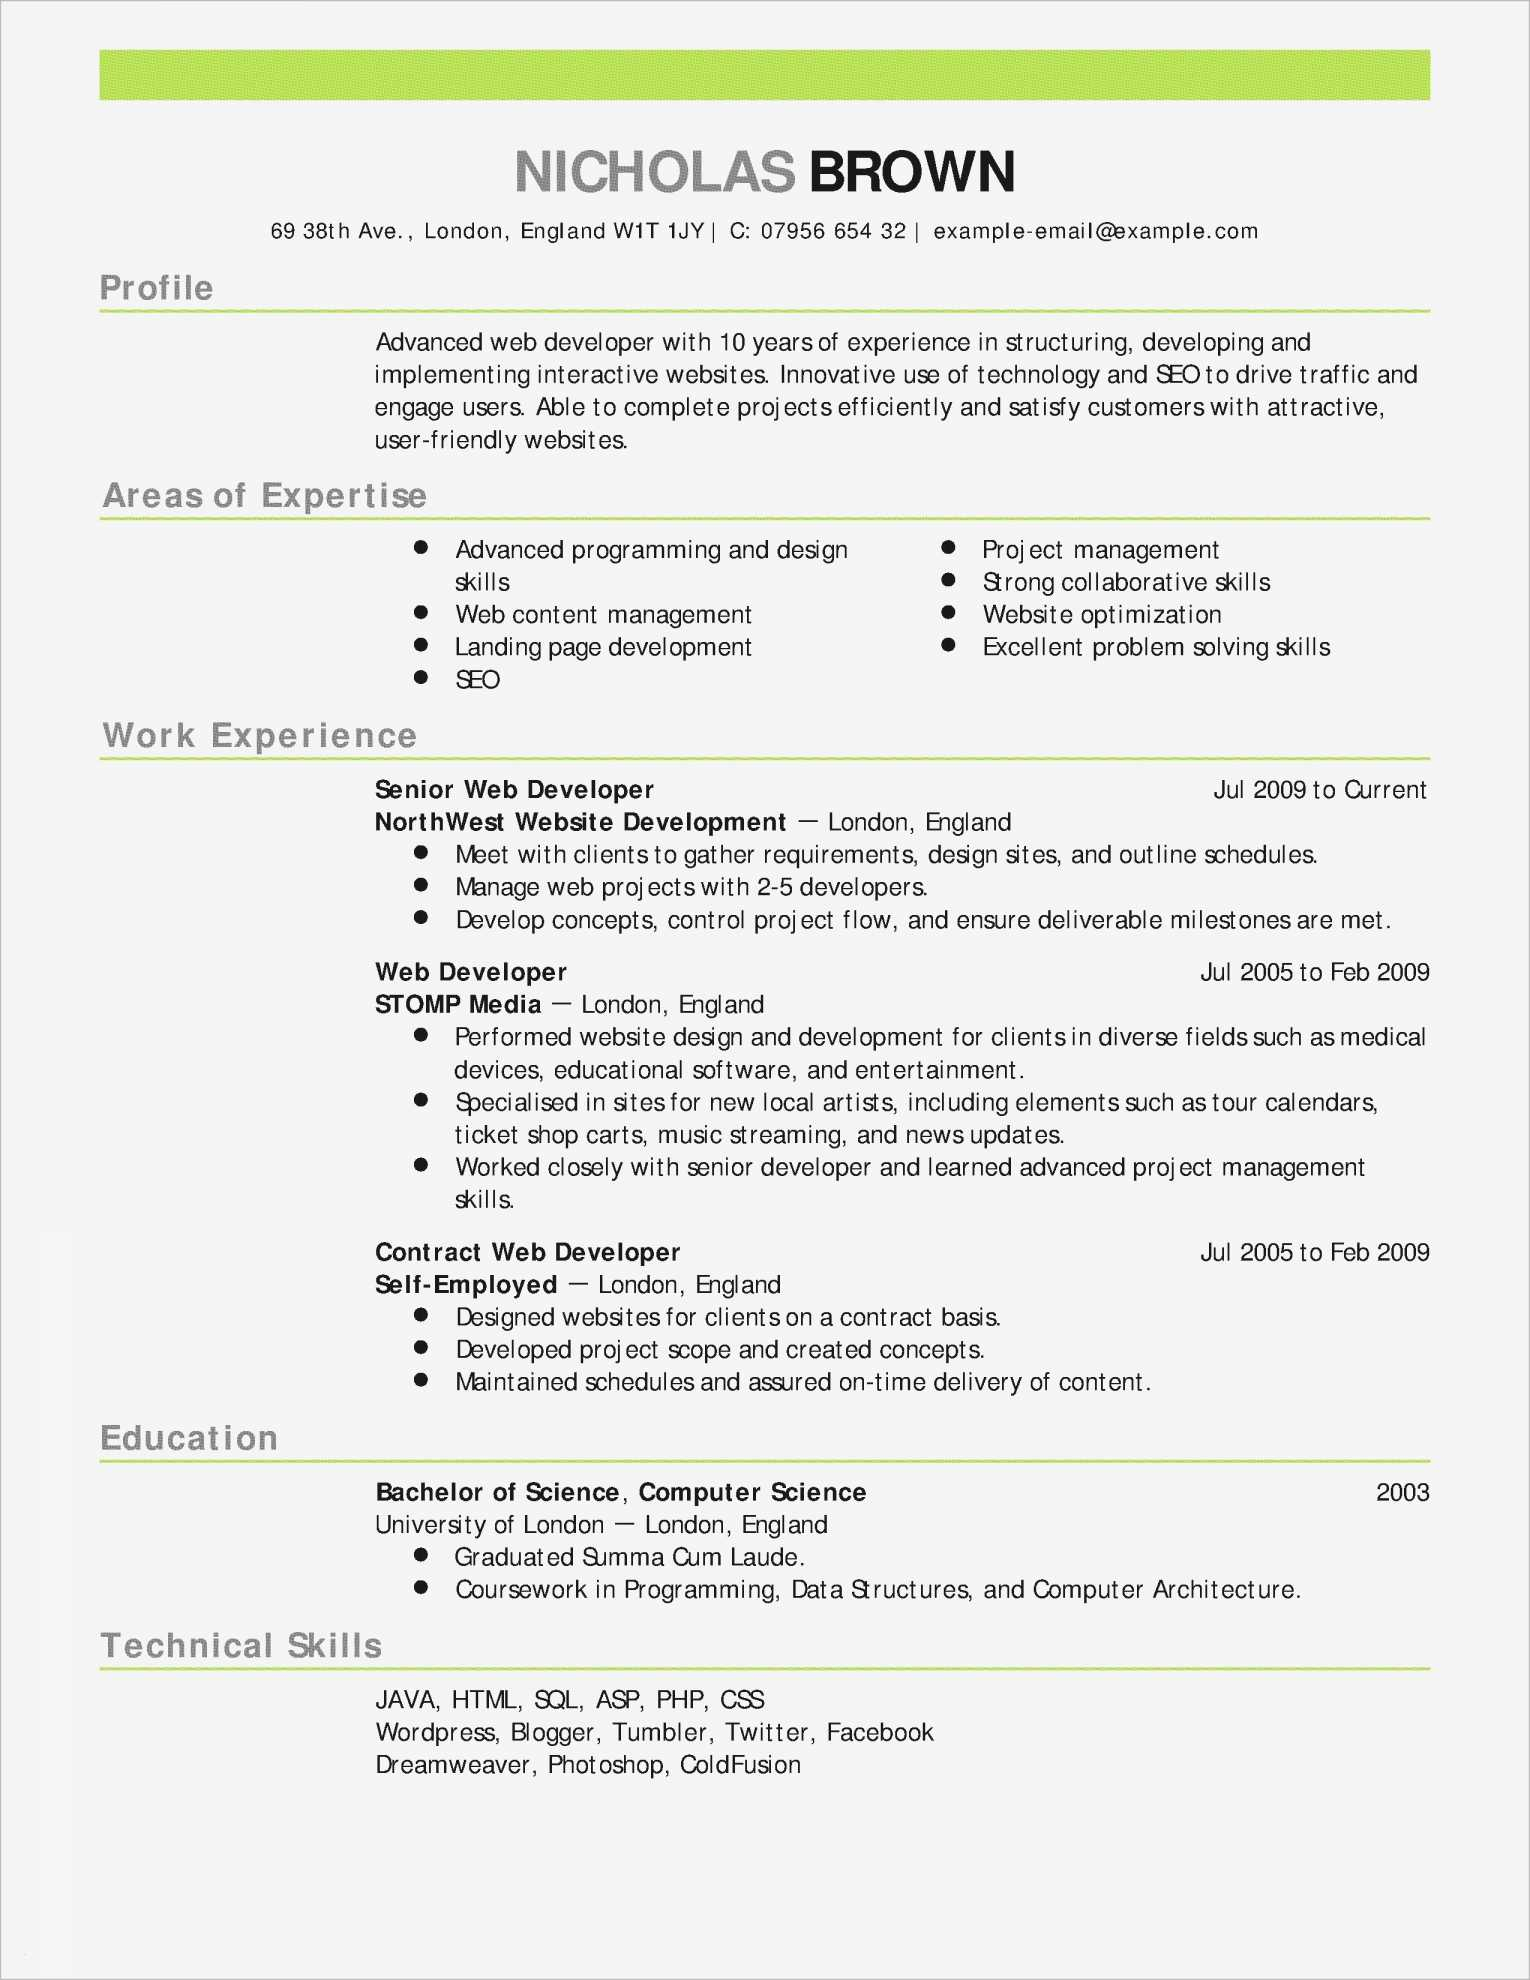 Bookkeeping For Self Employed Spreadsheet Bookkeeping Resume Samples To Spreadsheet Bookkeeping Samples